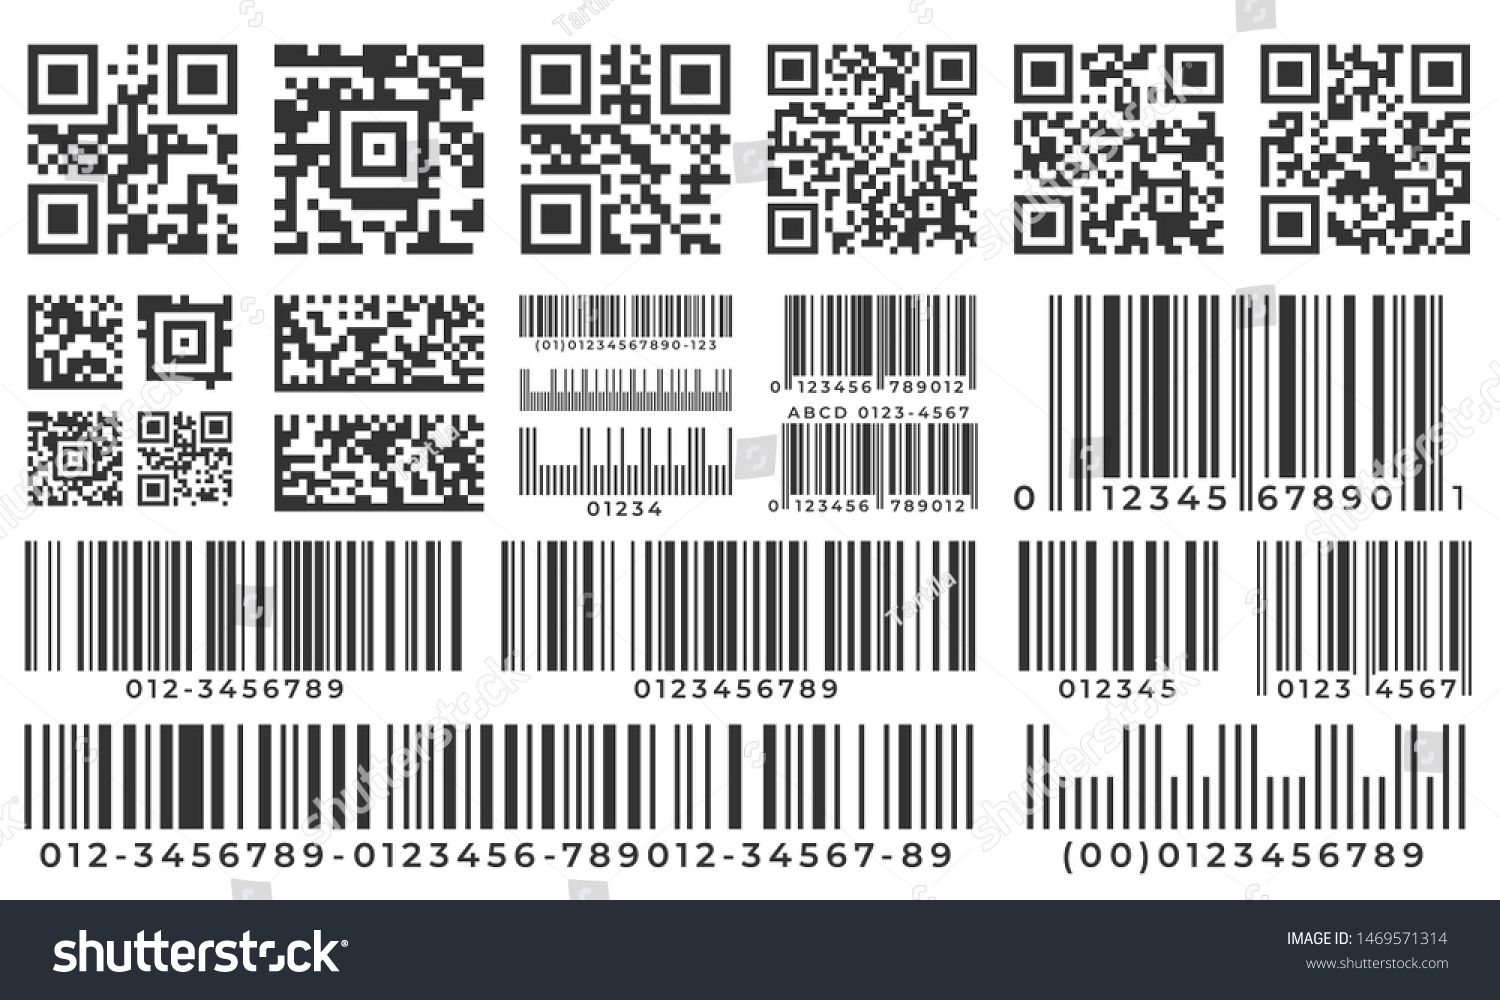 Barcodes Scan Bar Label Qr Code And Industrial Barcode Product Inventory Badge Codes Stripe Sticker And Package Bars Superma Icon Set Vector Coding Vector